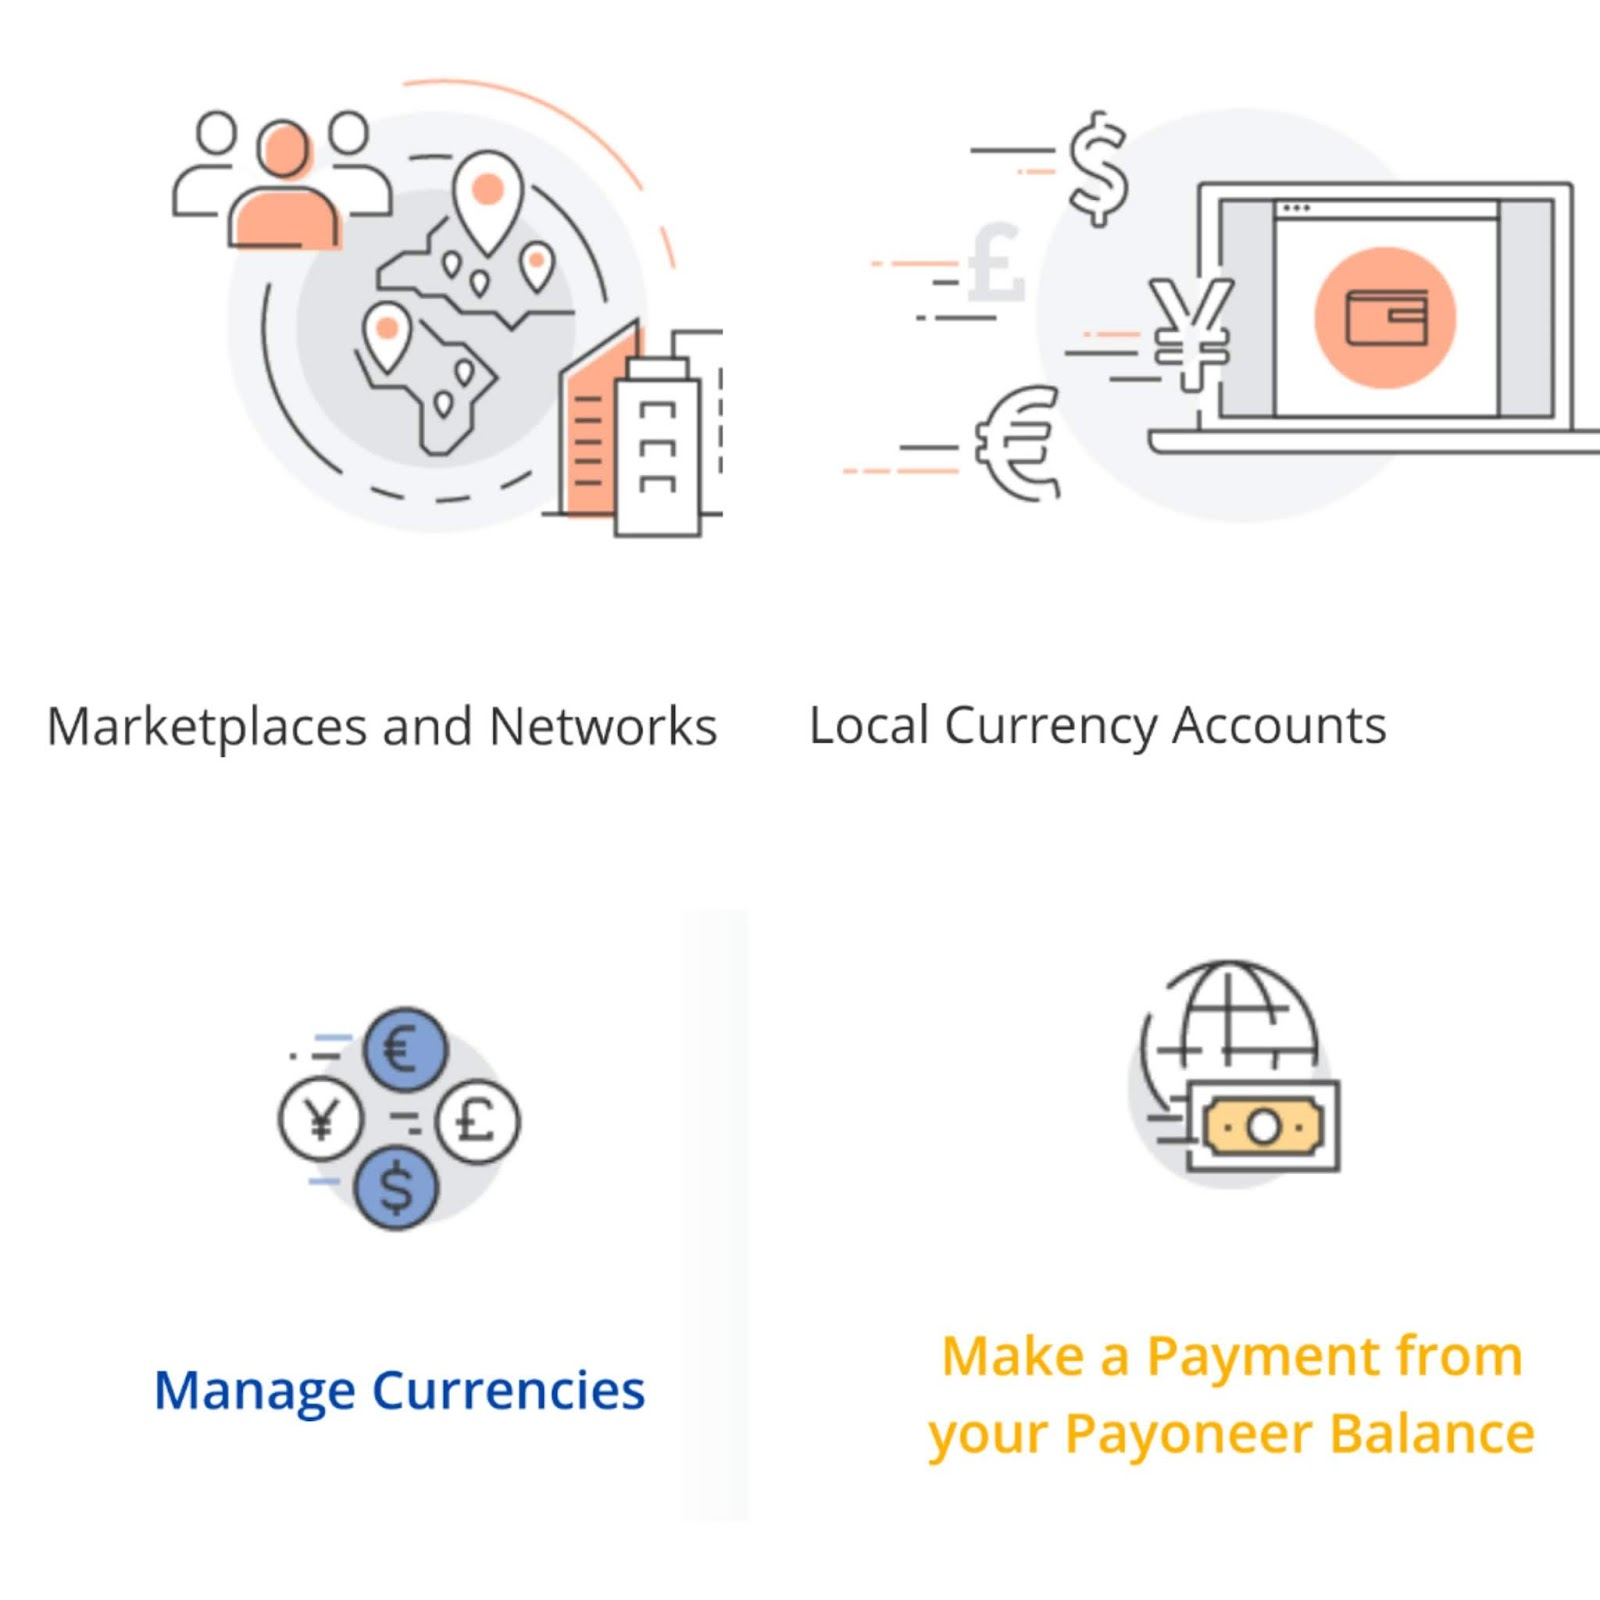 Payoneer features and solutions